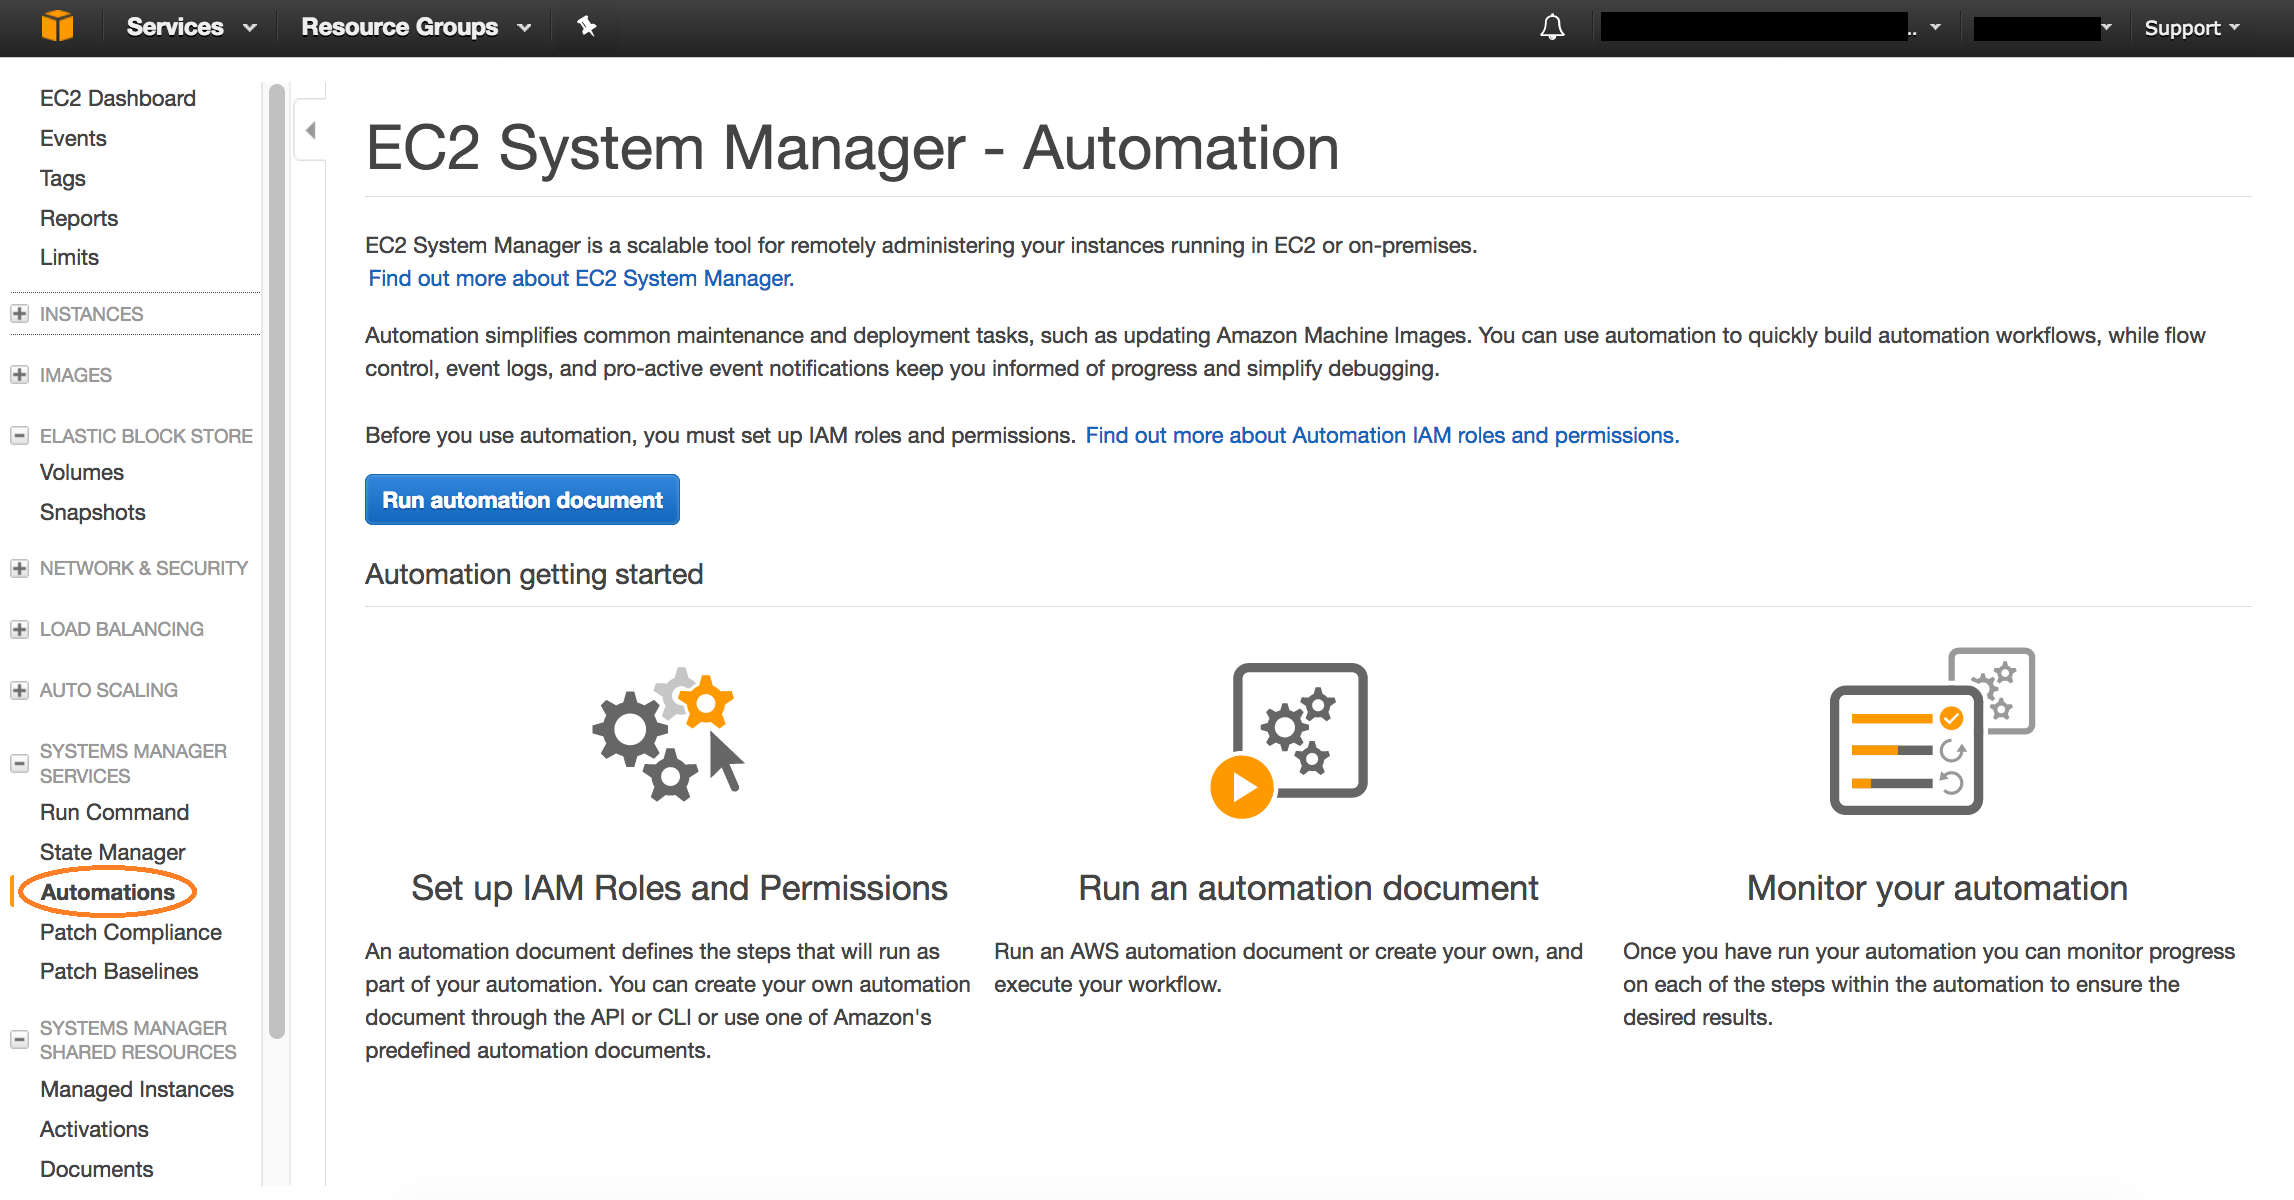 Windows AMI Patching and Maintenance with Amazon EC2 Systems